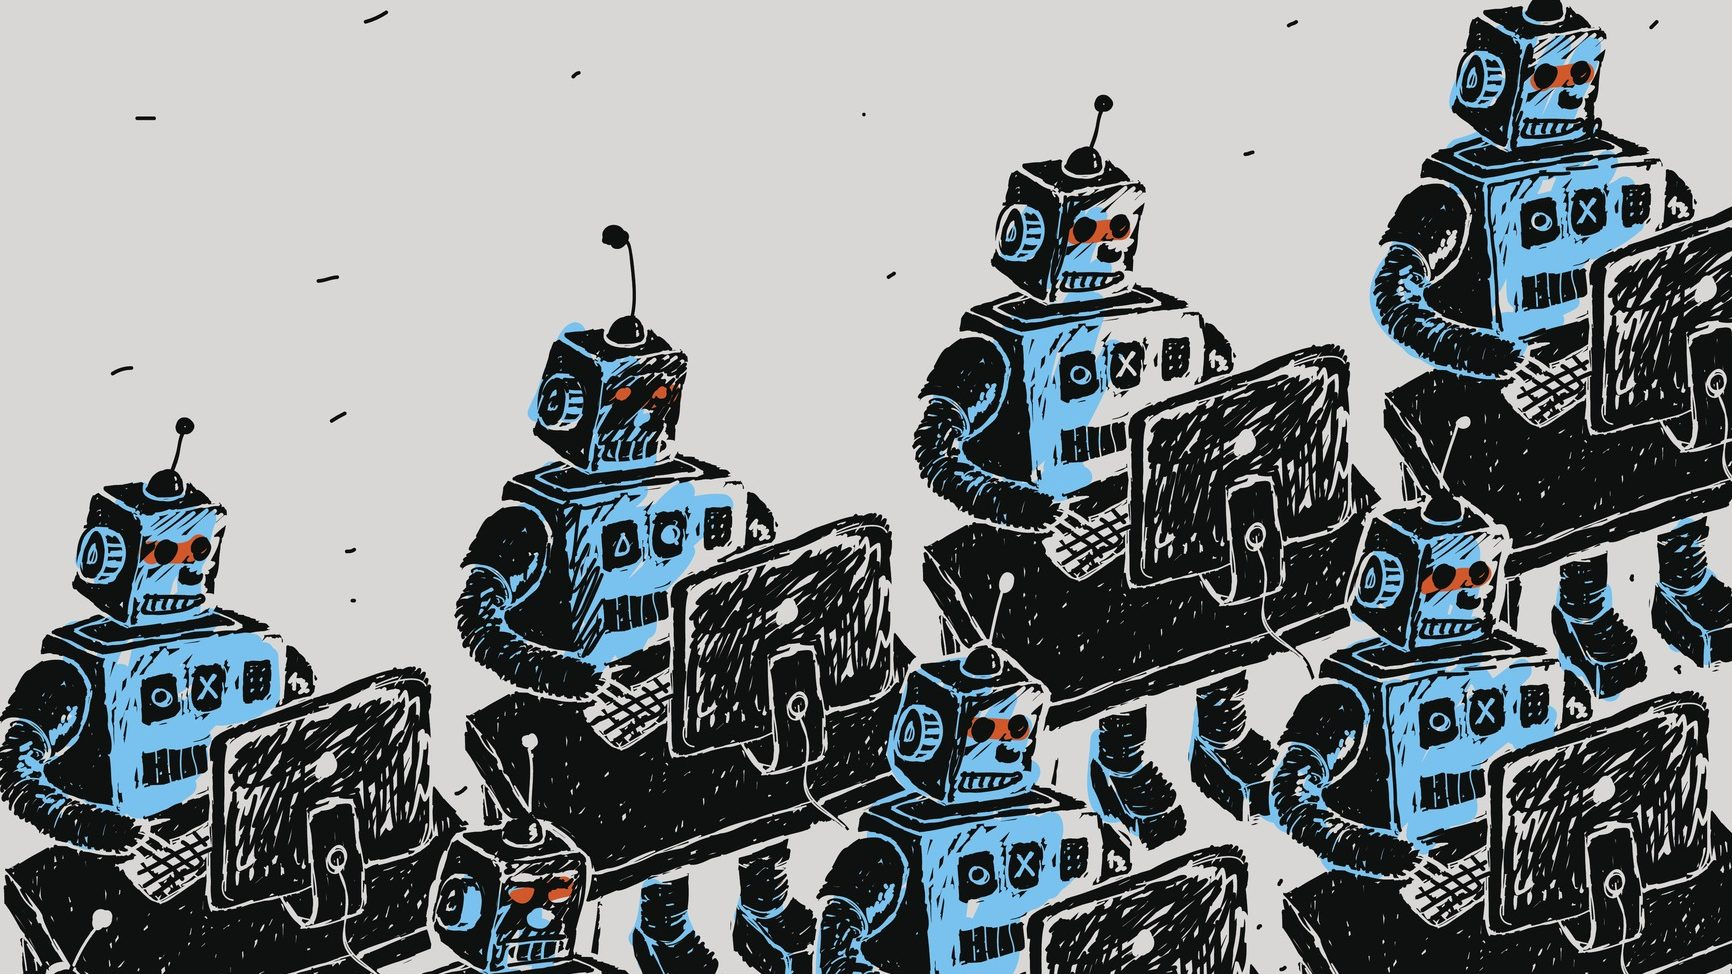 Robots Are Learning and Speaking in Languages We Can't Comprehend